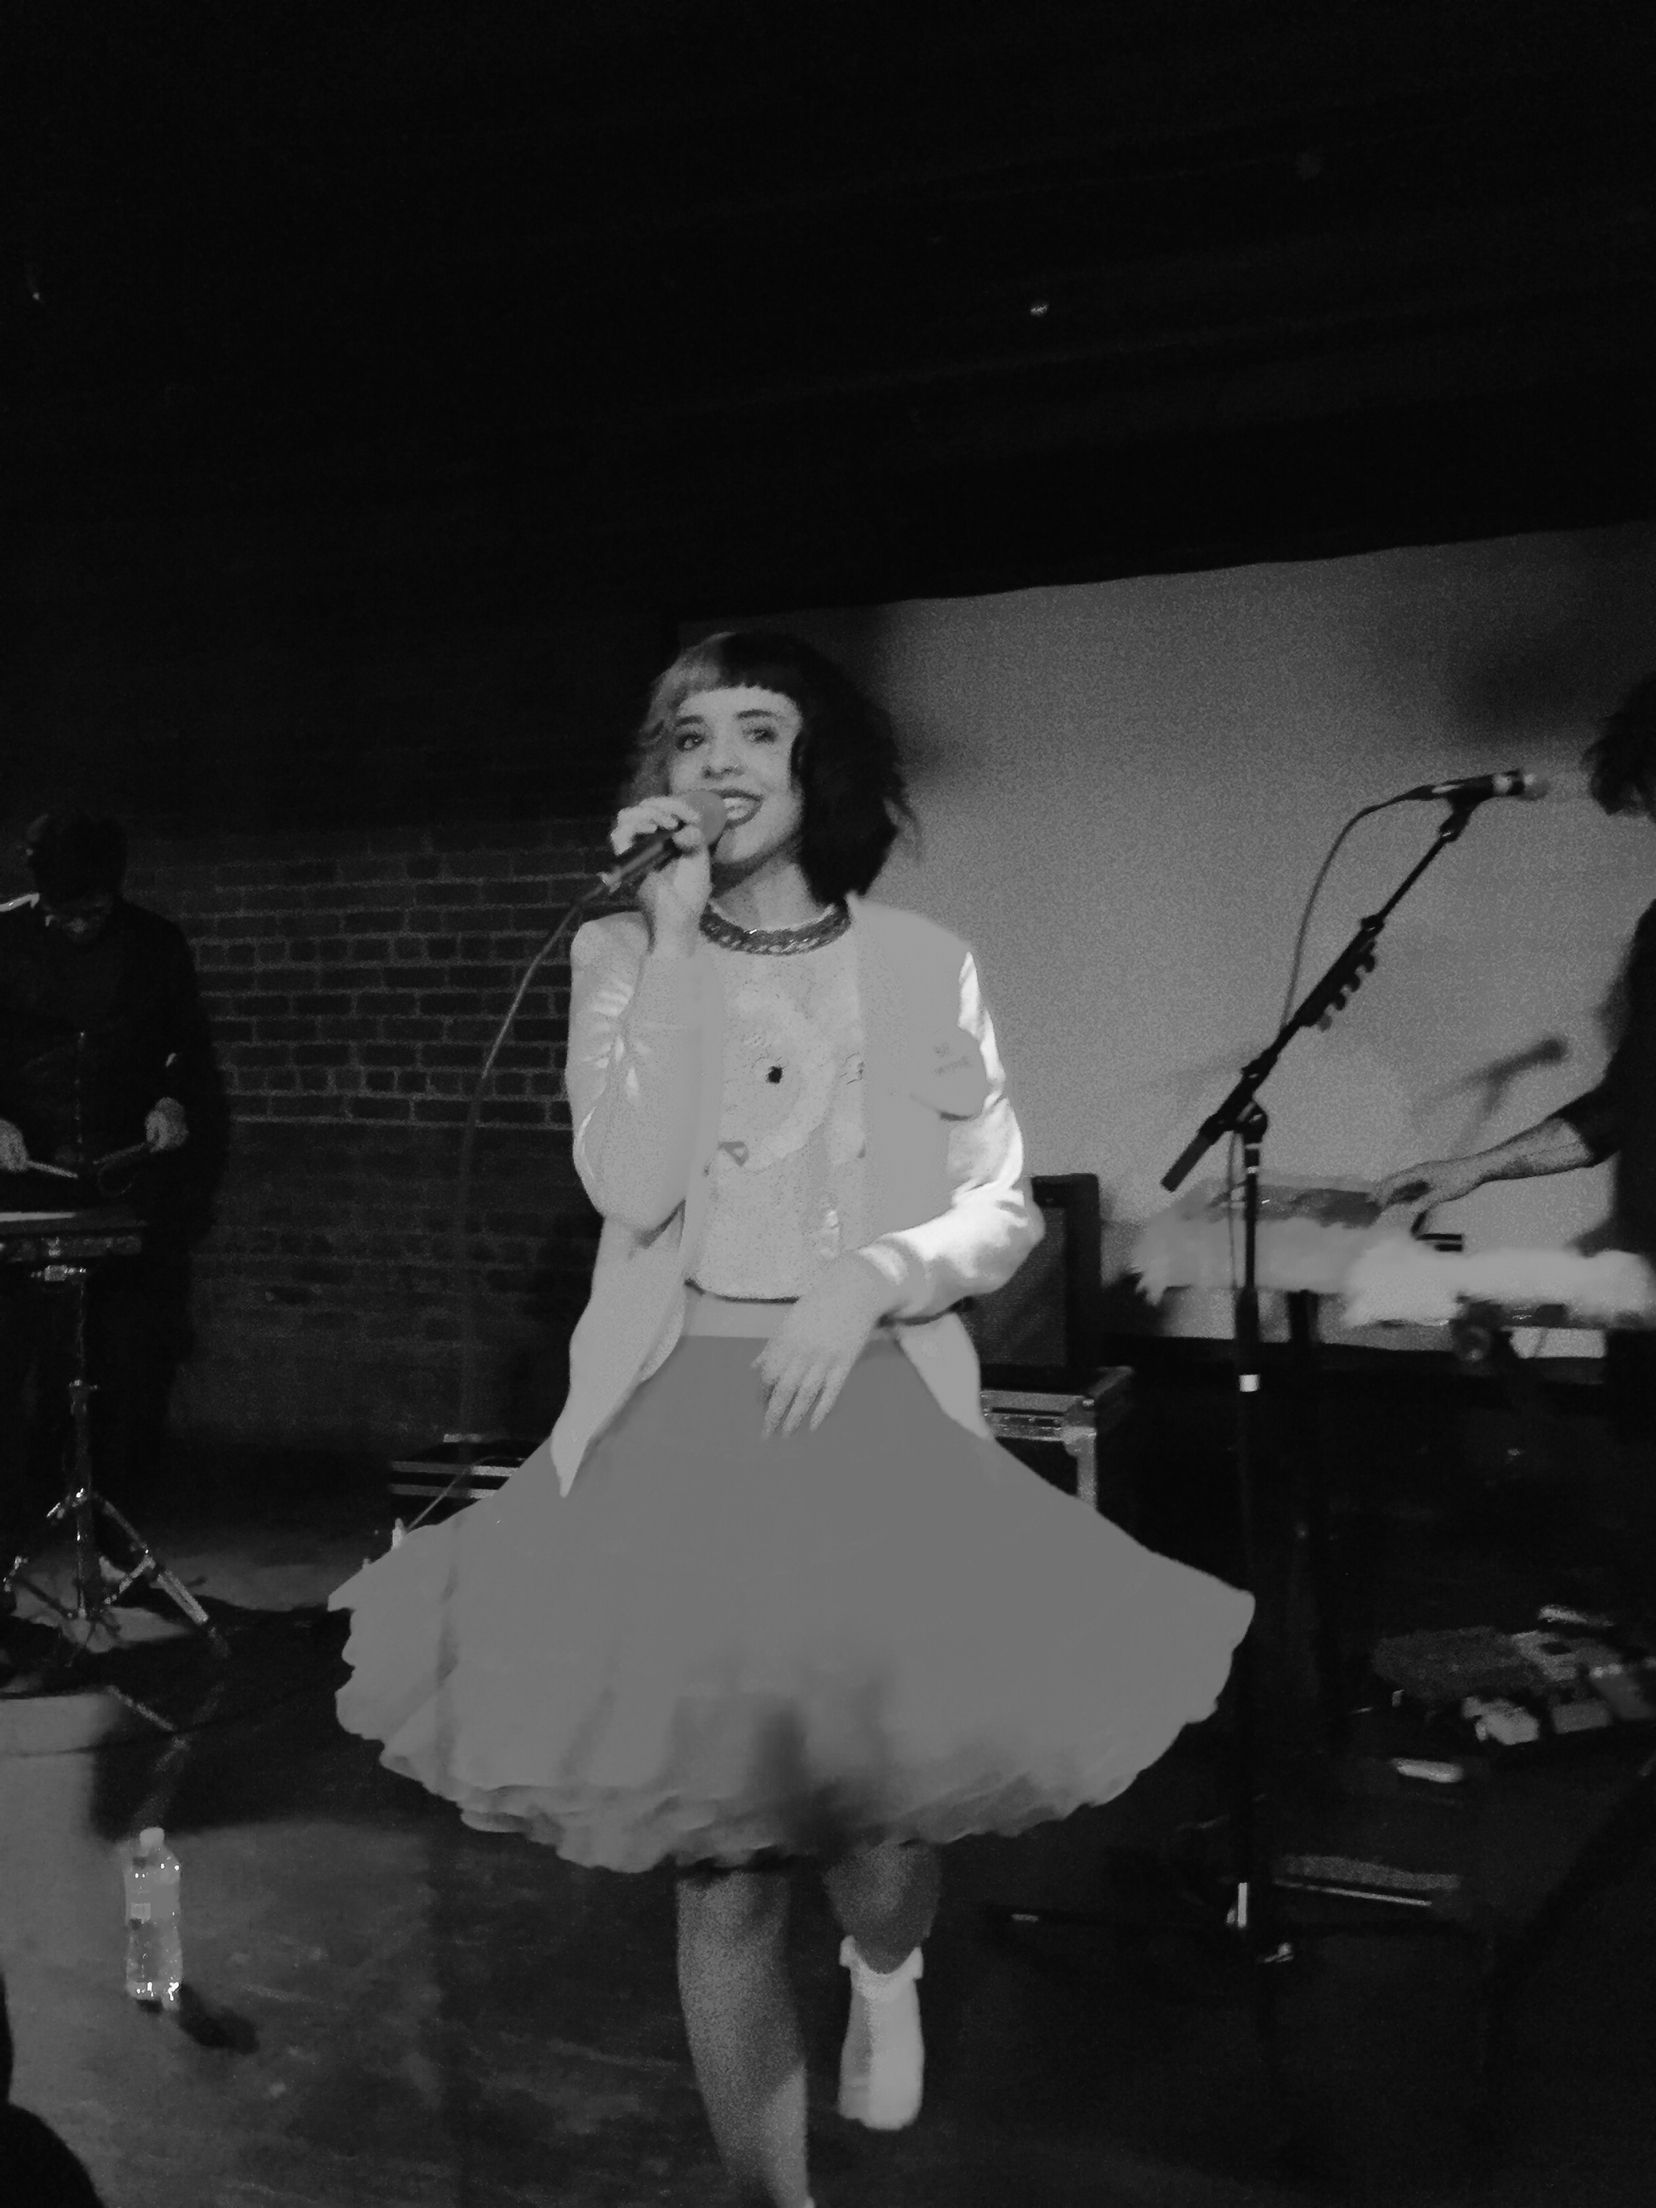 Melanie at The Shelter in Detroit photo credit Cassidy